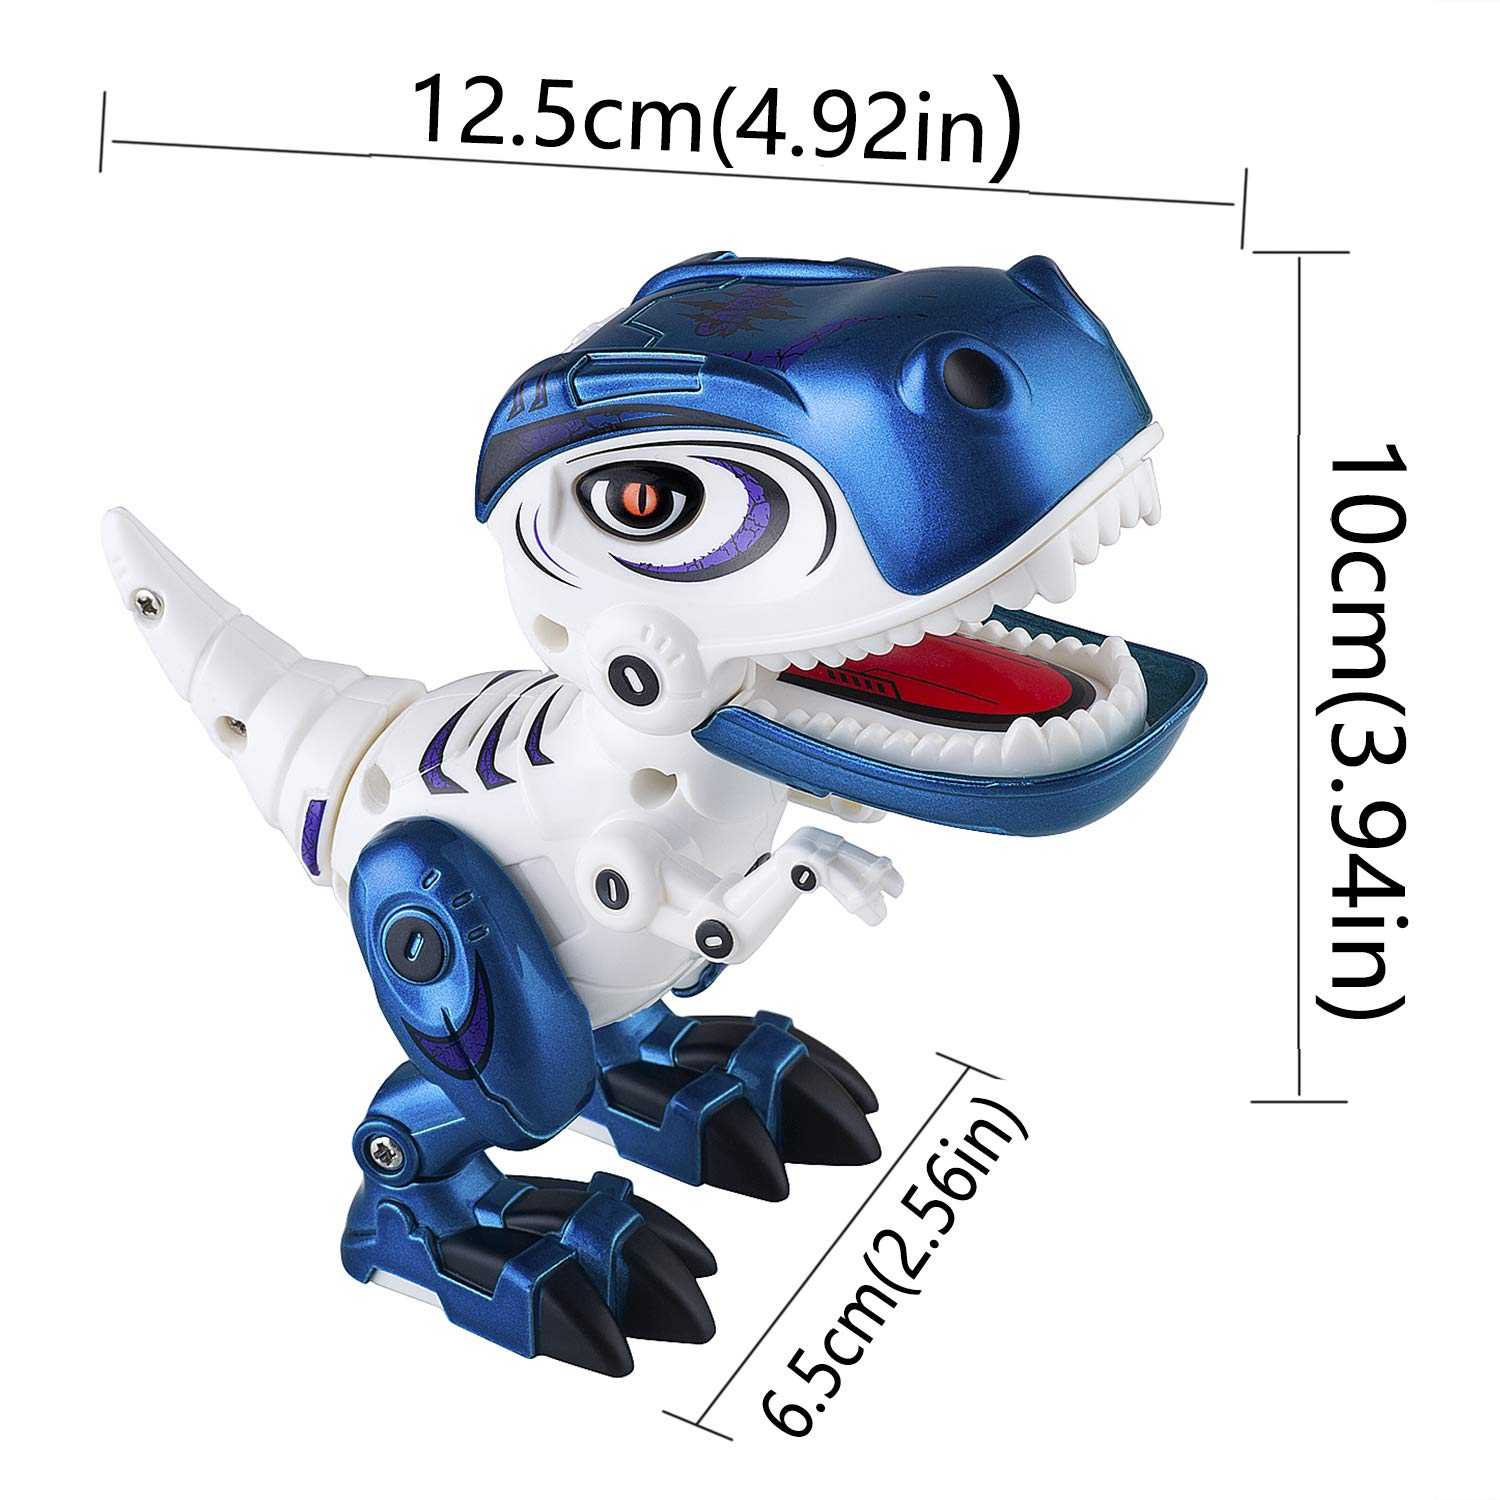 Dolibi Dinosaur Toys for 3 Year Olds Up,Mini Dino Toys Dinosaur Robot,Flexible Body,Sound & Lights (Blue) by Dolibi (Image #5)